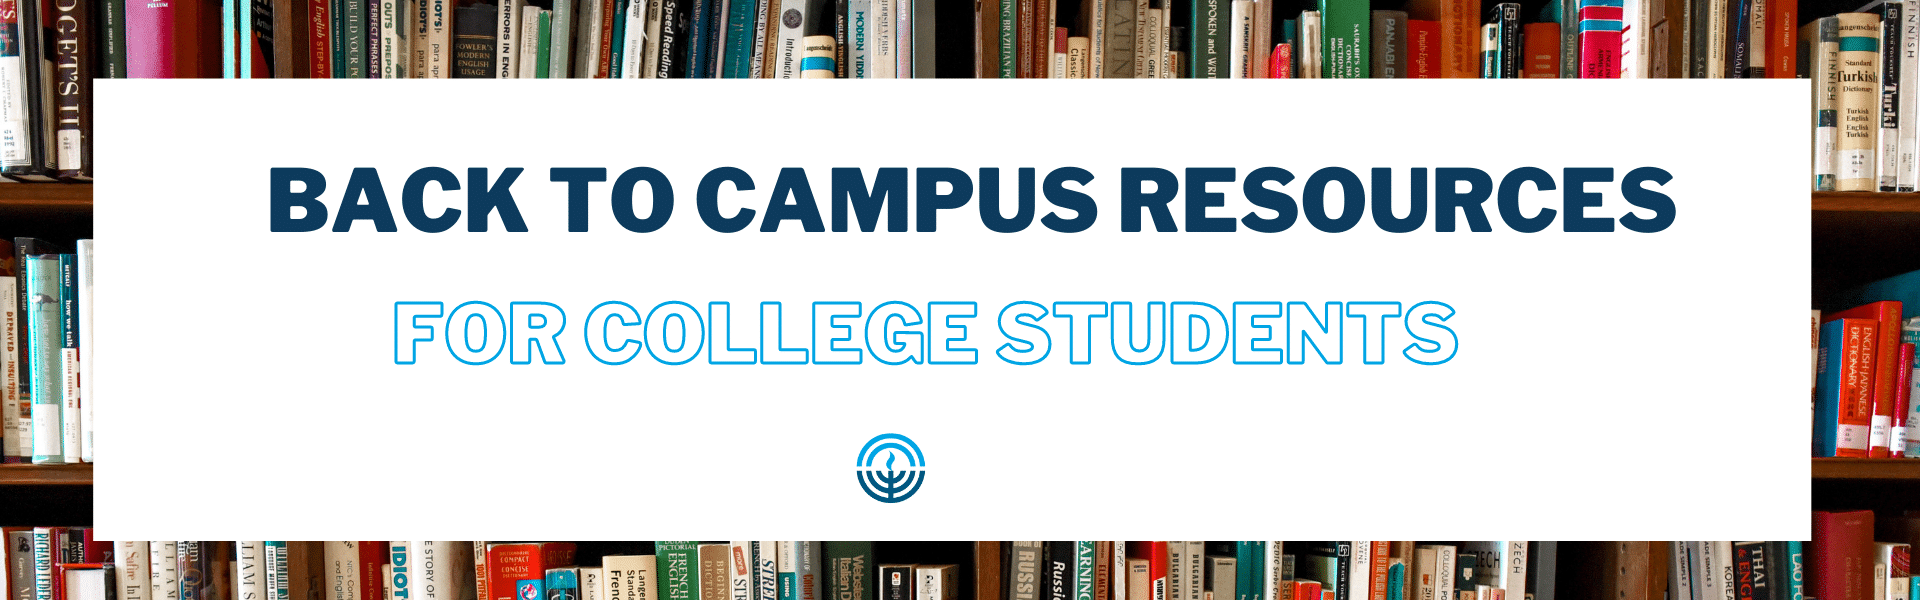 Back To Campus Resources For College Students! (1)